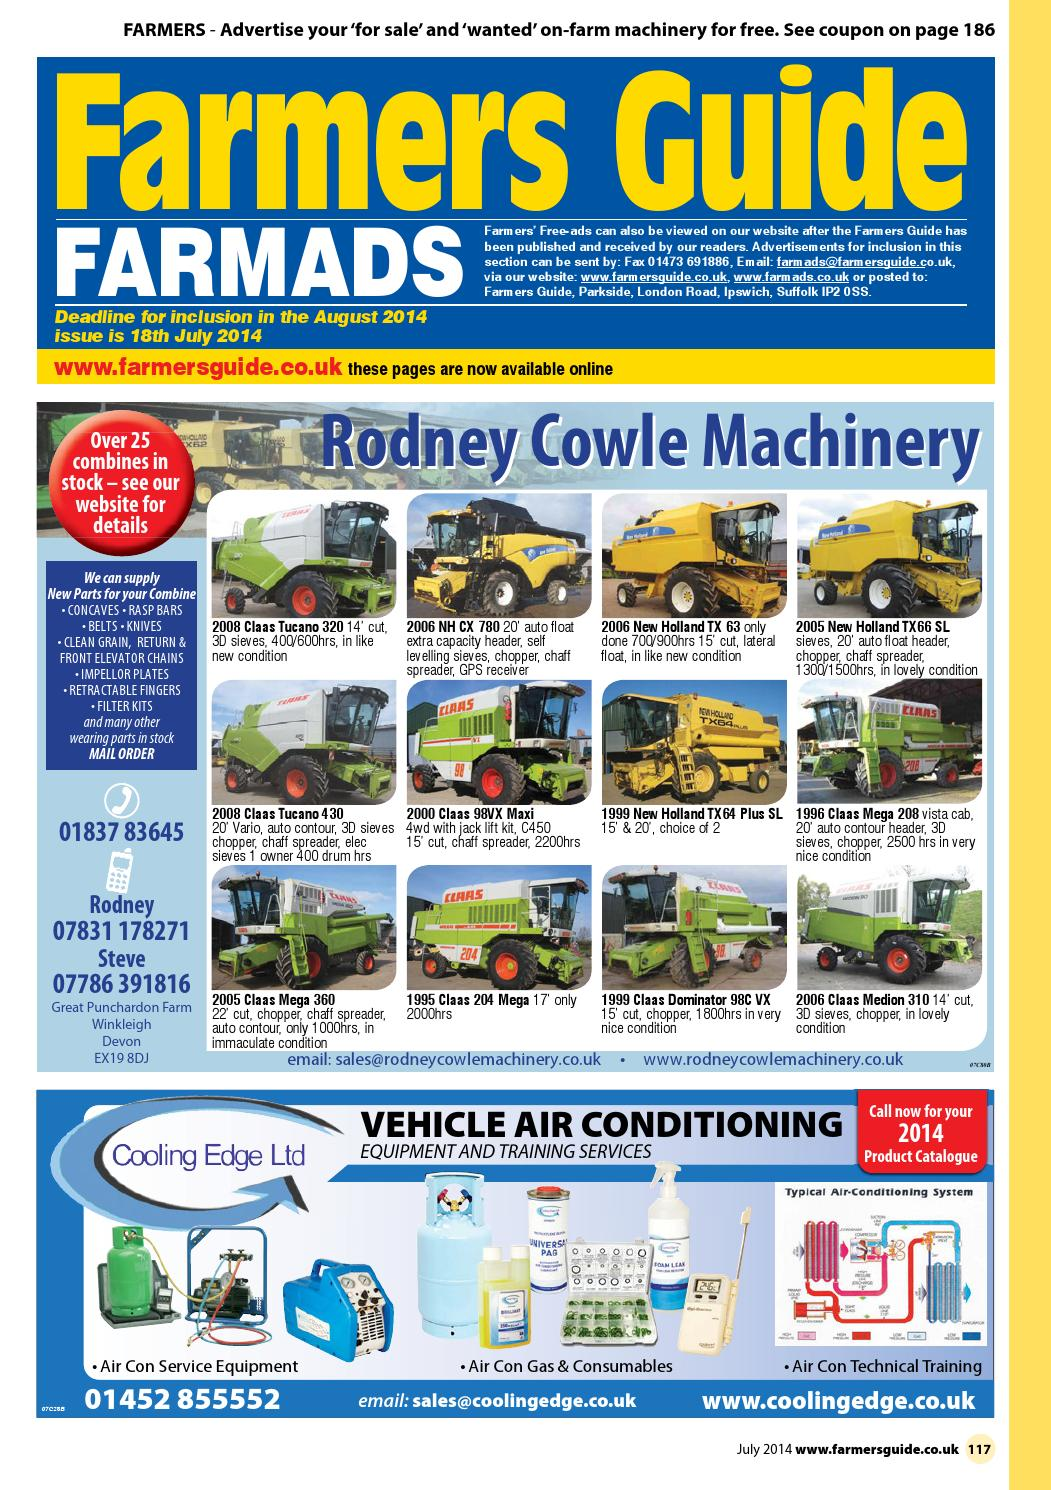 Farmers Guide classified section - July 2014 by Farmers Guide - issuu